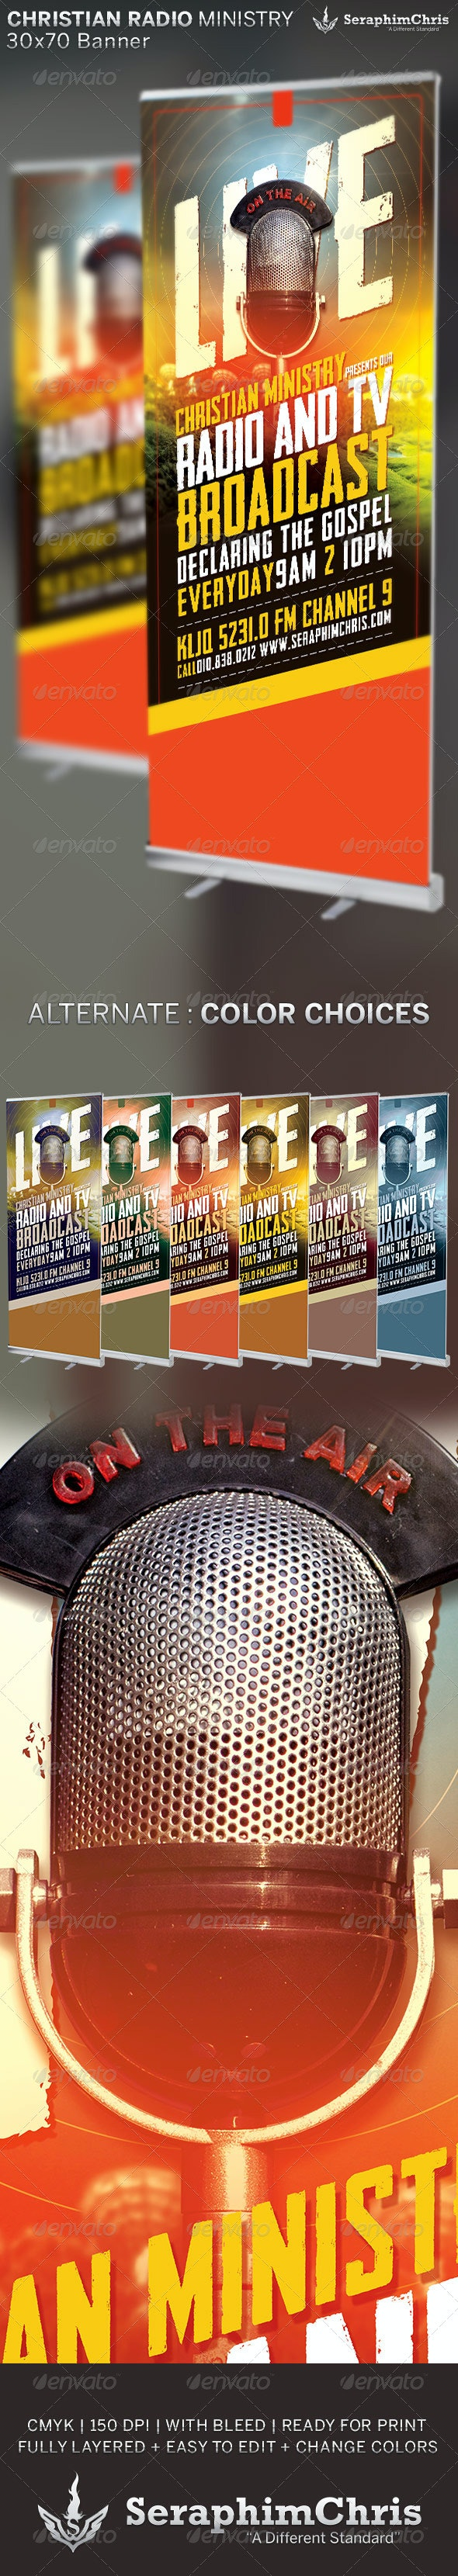 Christian Radio Ministry: Banner Template - Signage Print Templates